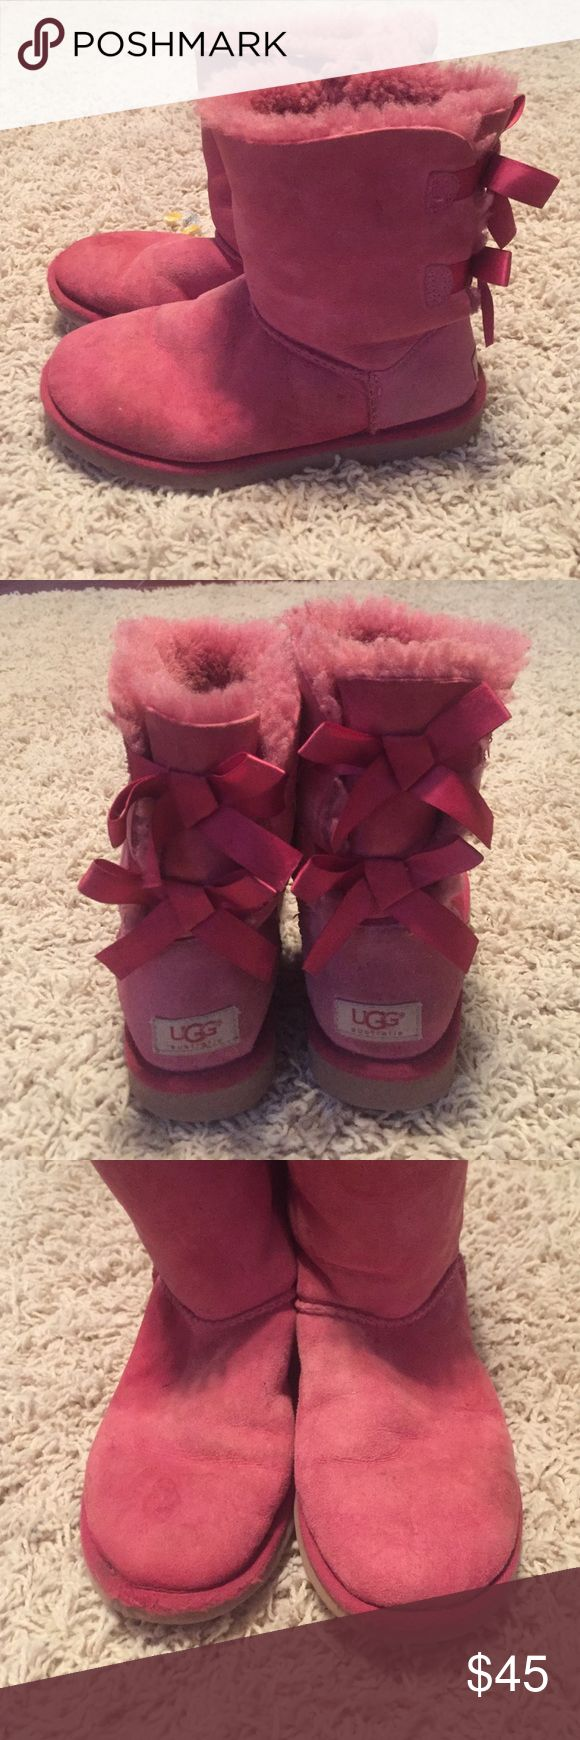 Girls Ugg Boots size 6 Girls Ugg Boots size 6  Great Used Condition. We did spray the weather proofing on them when we got them. UGG Shoes Rain & Snow Boots